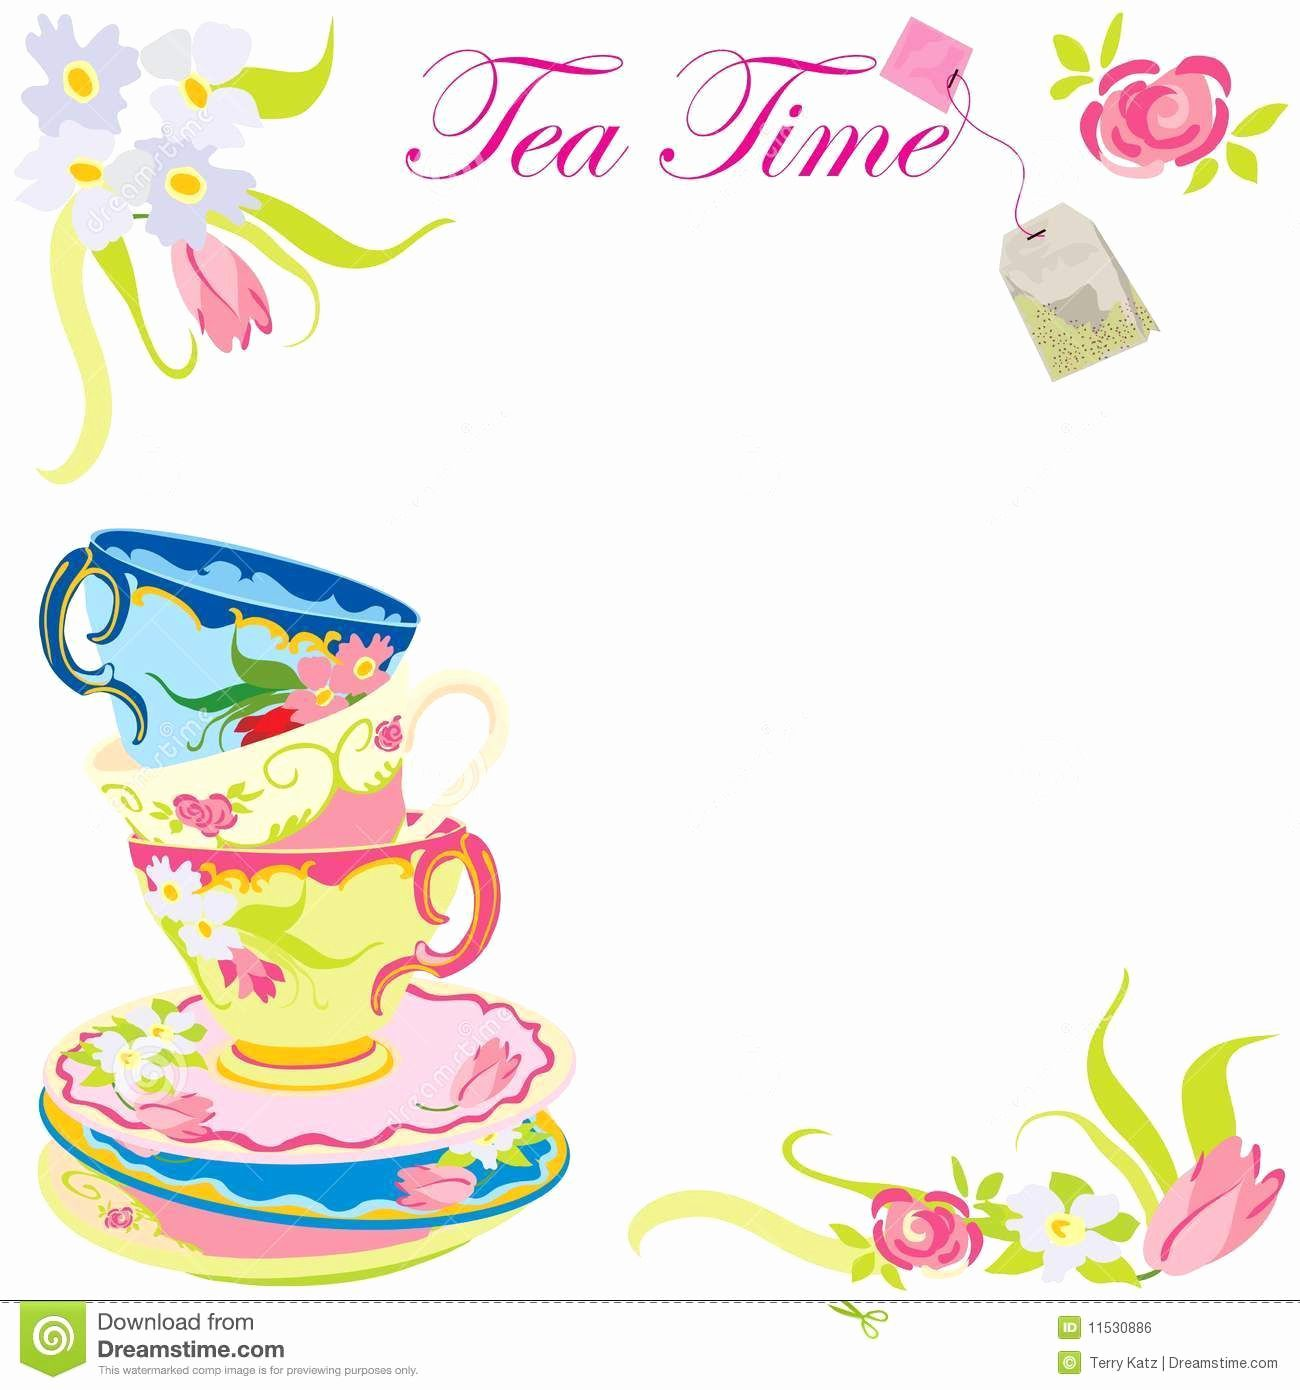 009 Stirring Tea Party Invitation Template Sample  Card Victorian Wording For Bridal Shower